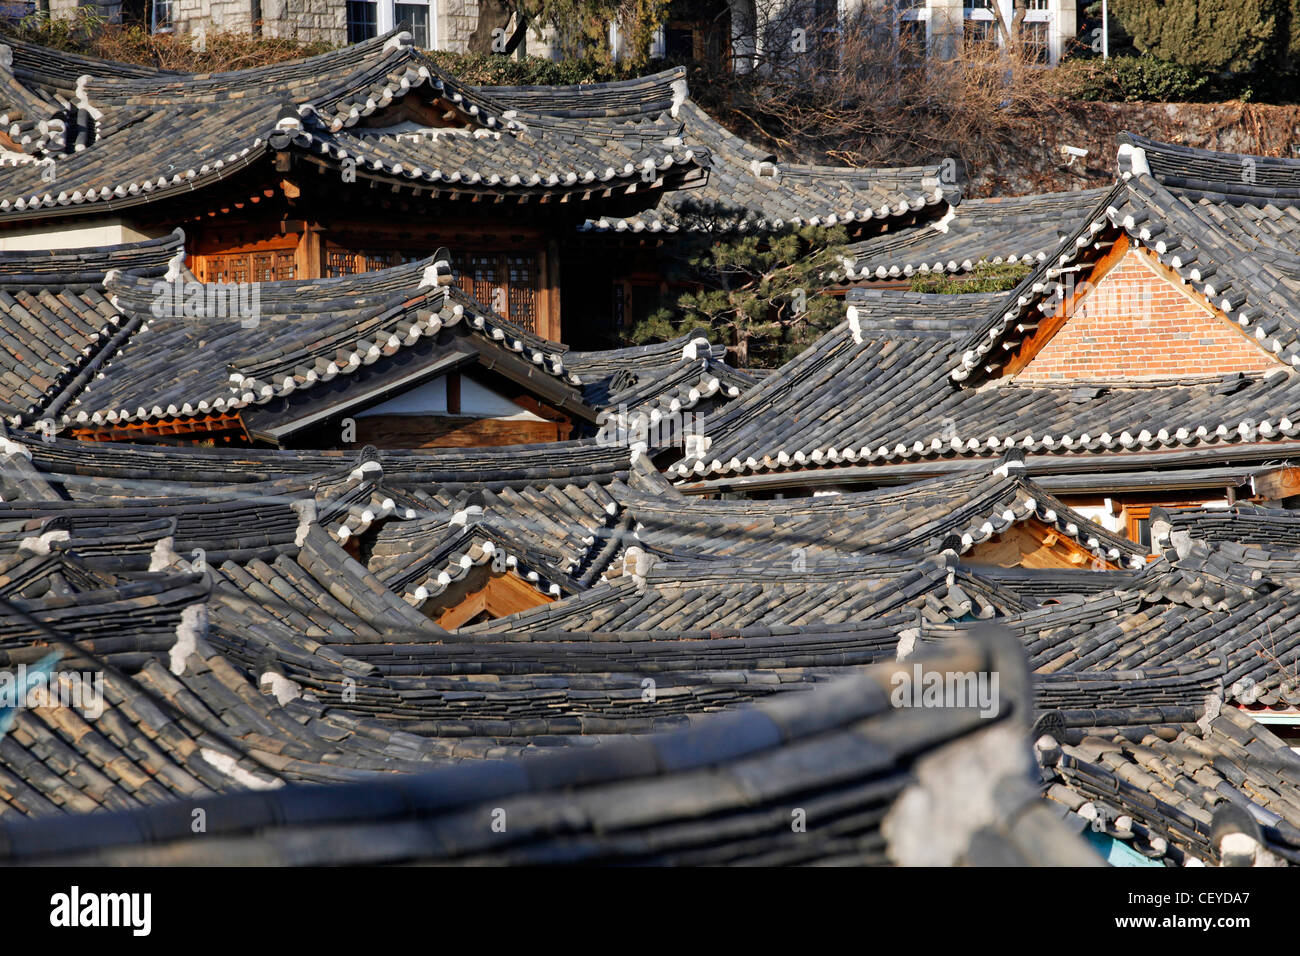 Roofs And Tiles Of Traditonal Korean Housing In The